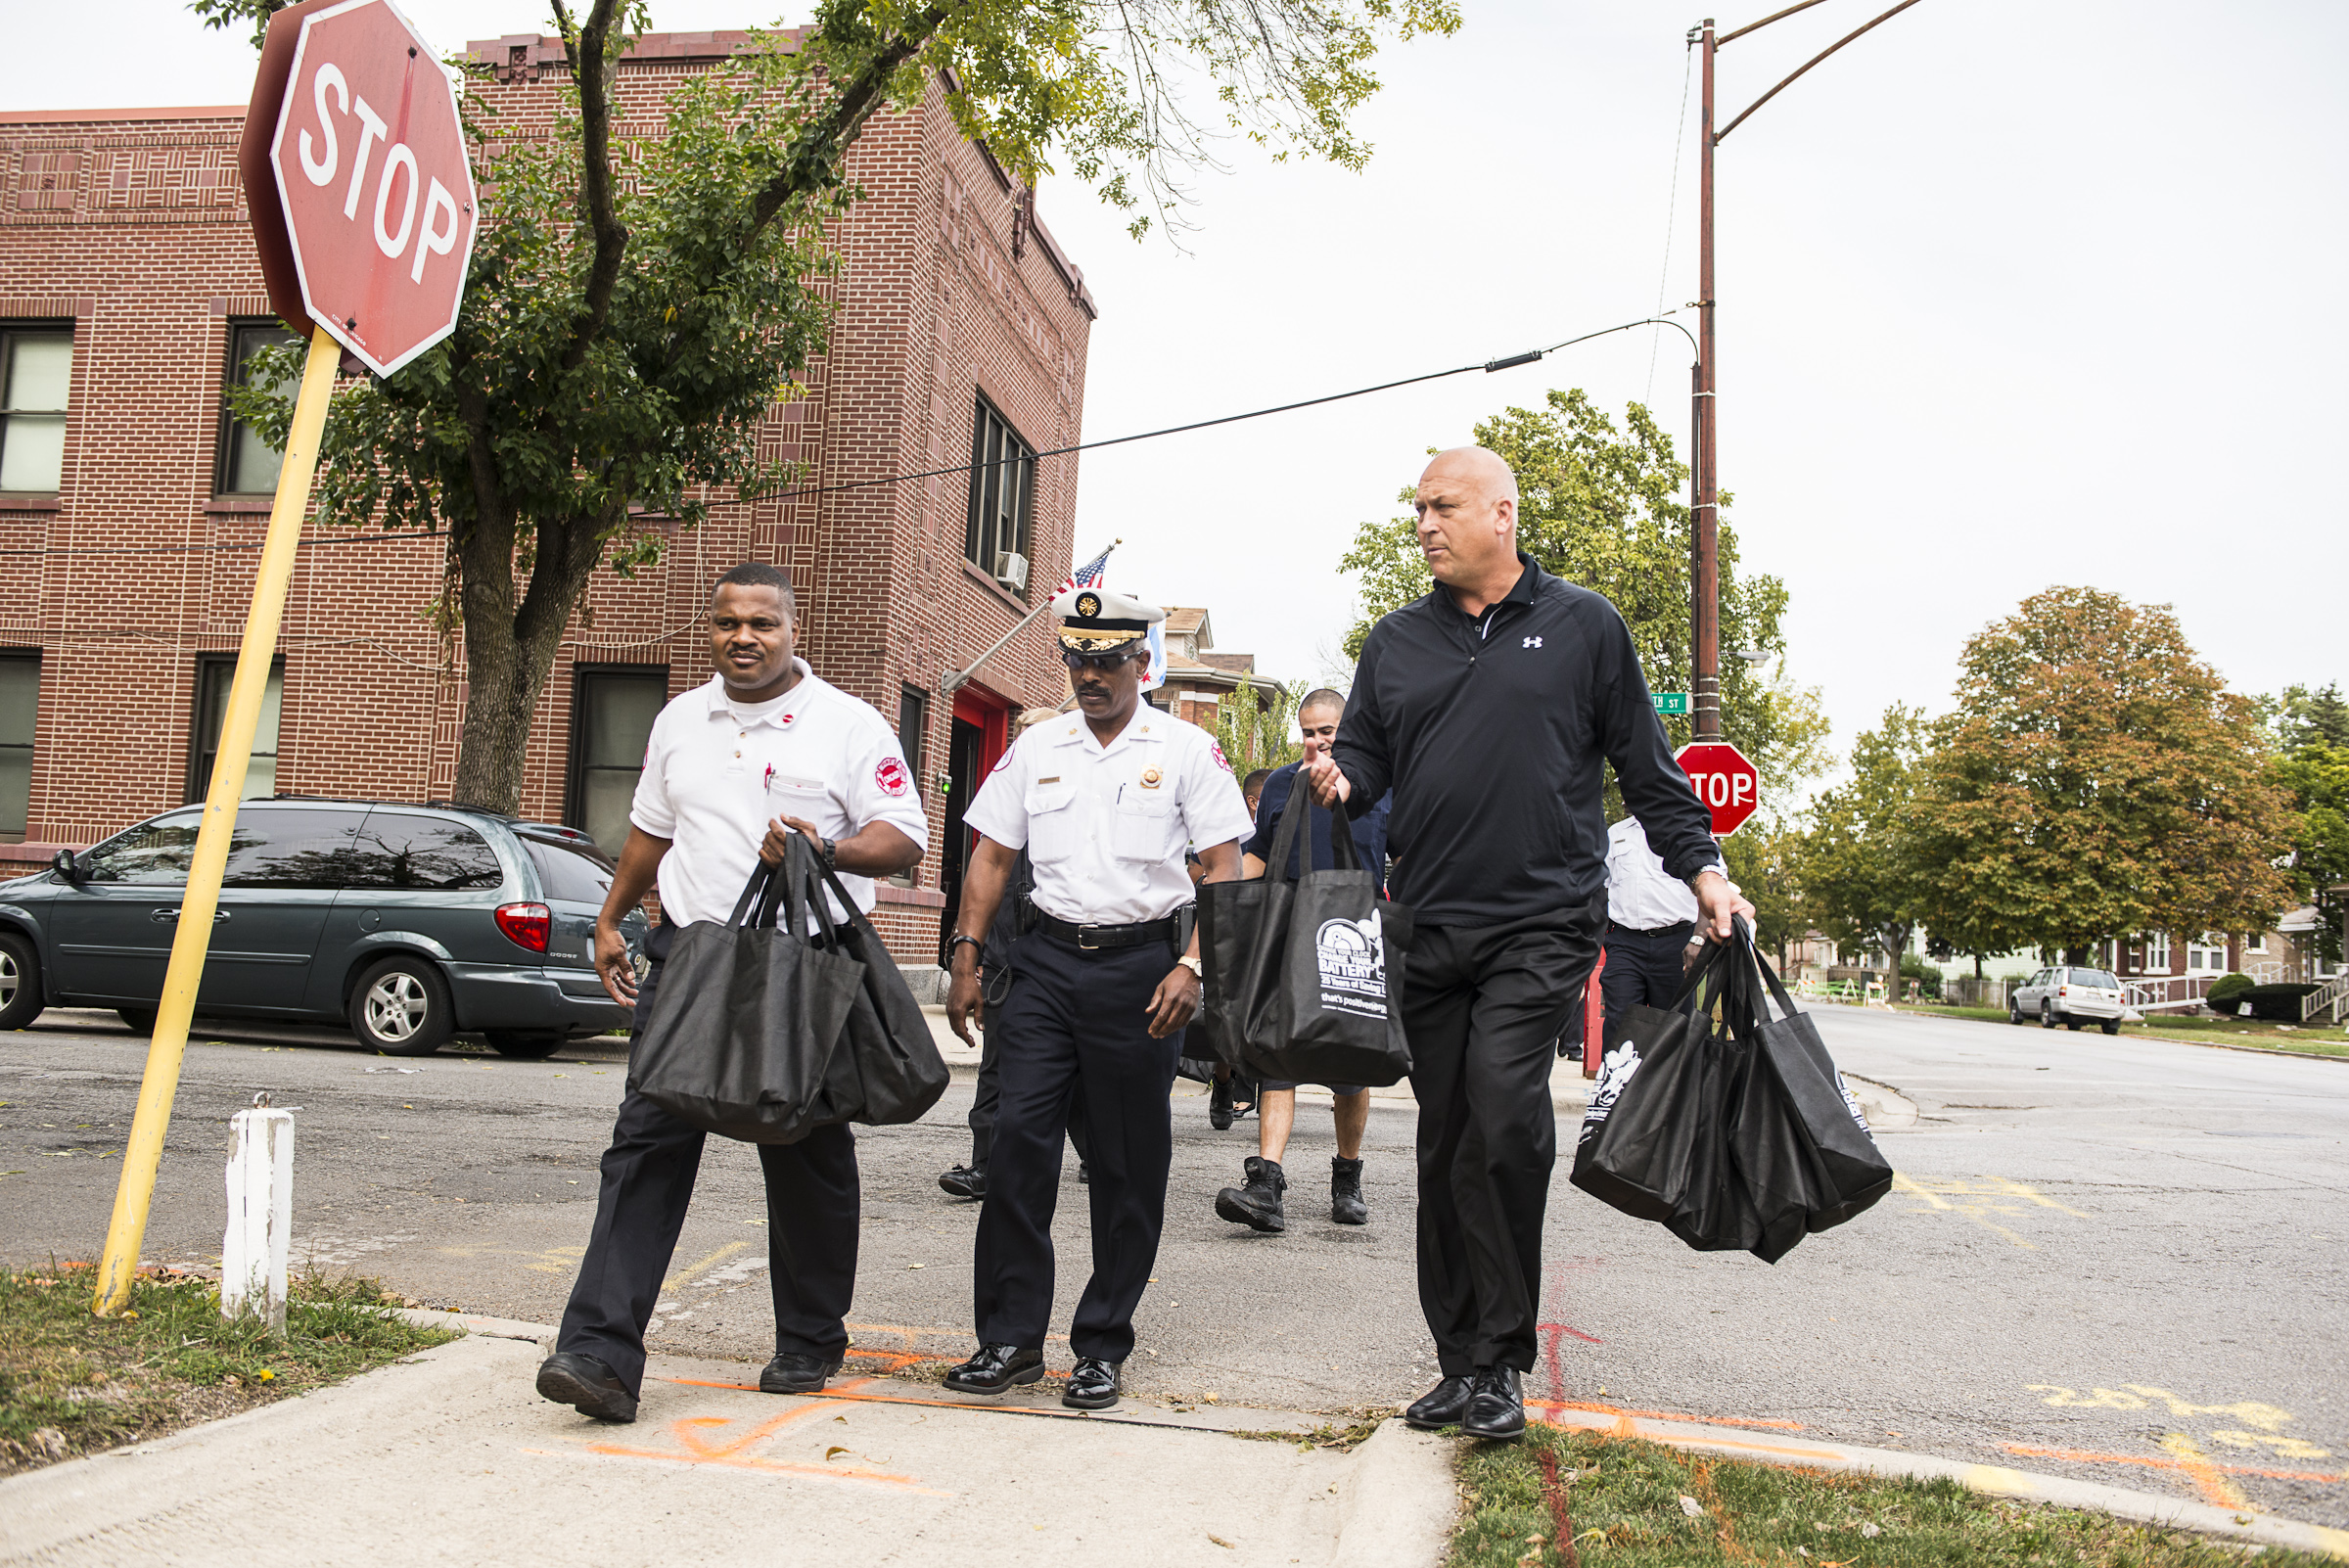 Cal Ripken, Jr. joins Energizer and the International Association of Fire Chiefs in Chicago to kick off 25th year of Change Your Clock Change Your Battery, a National Fire Safety Campaign